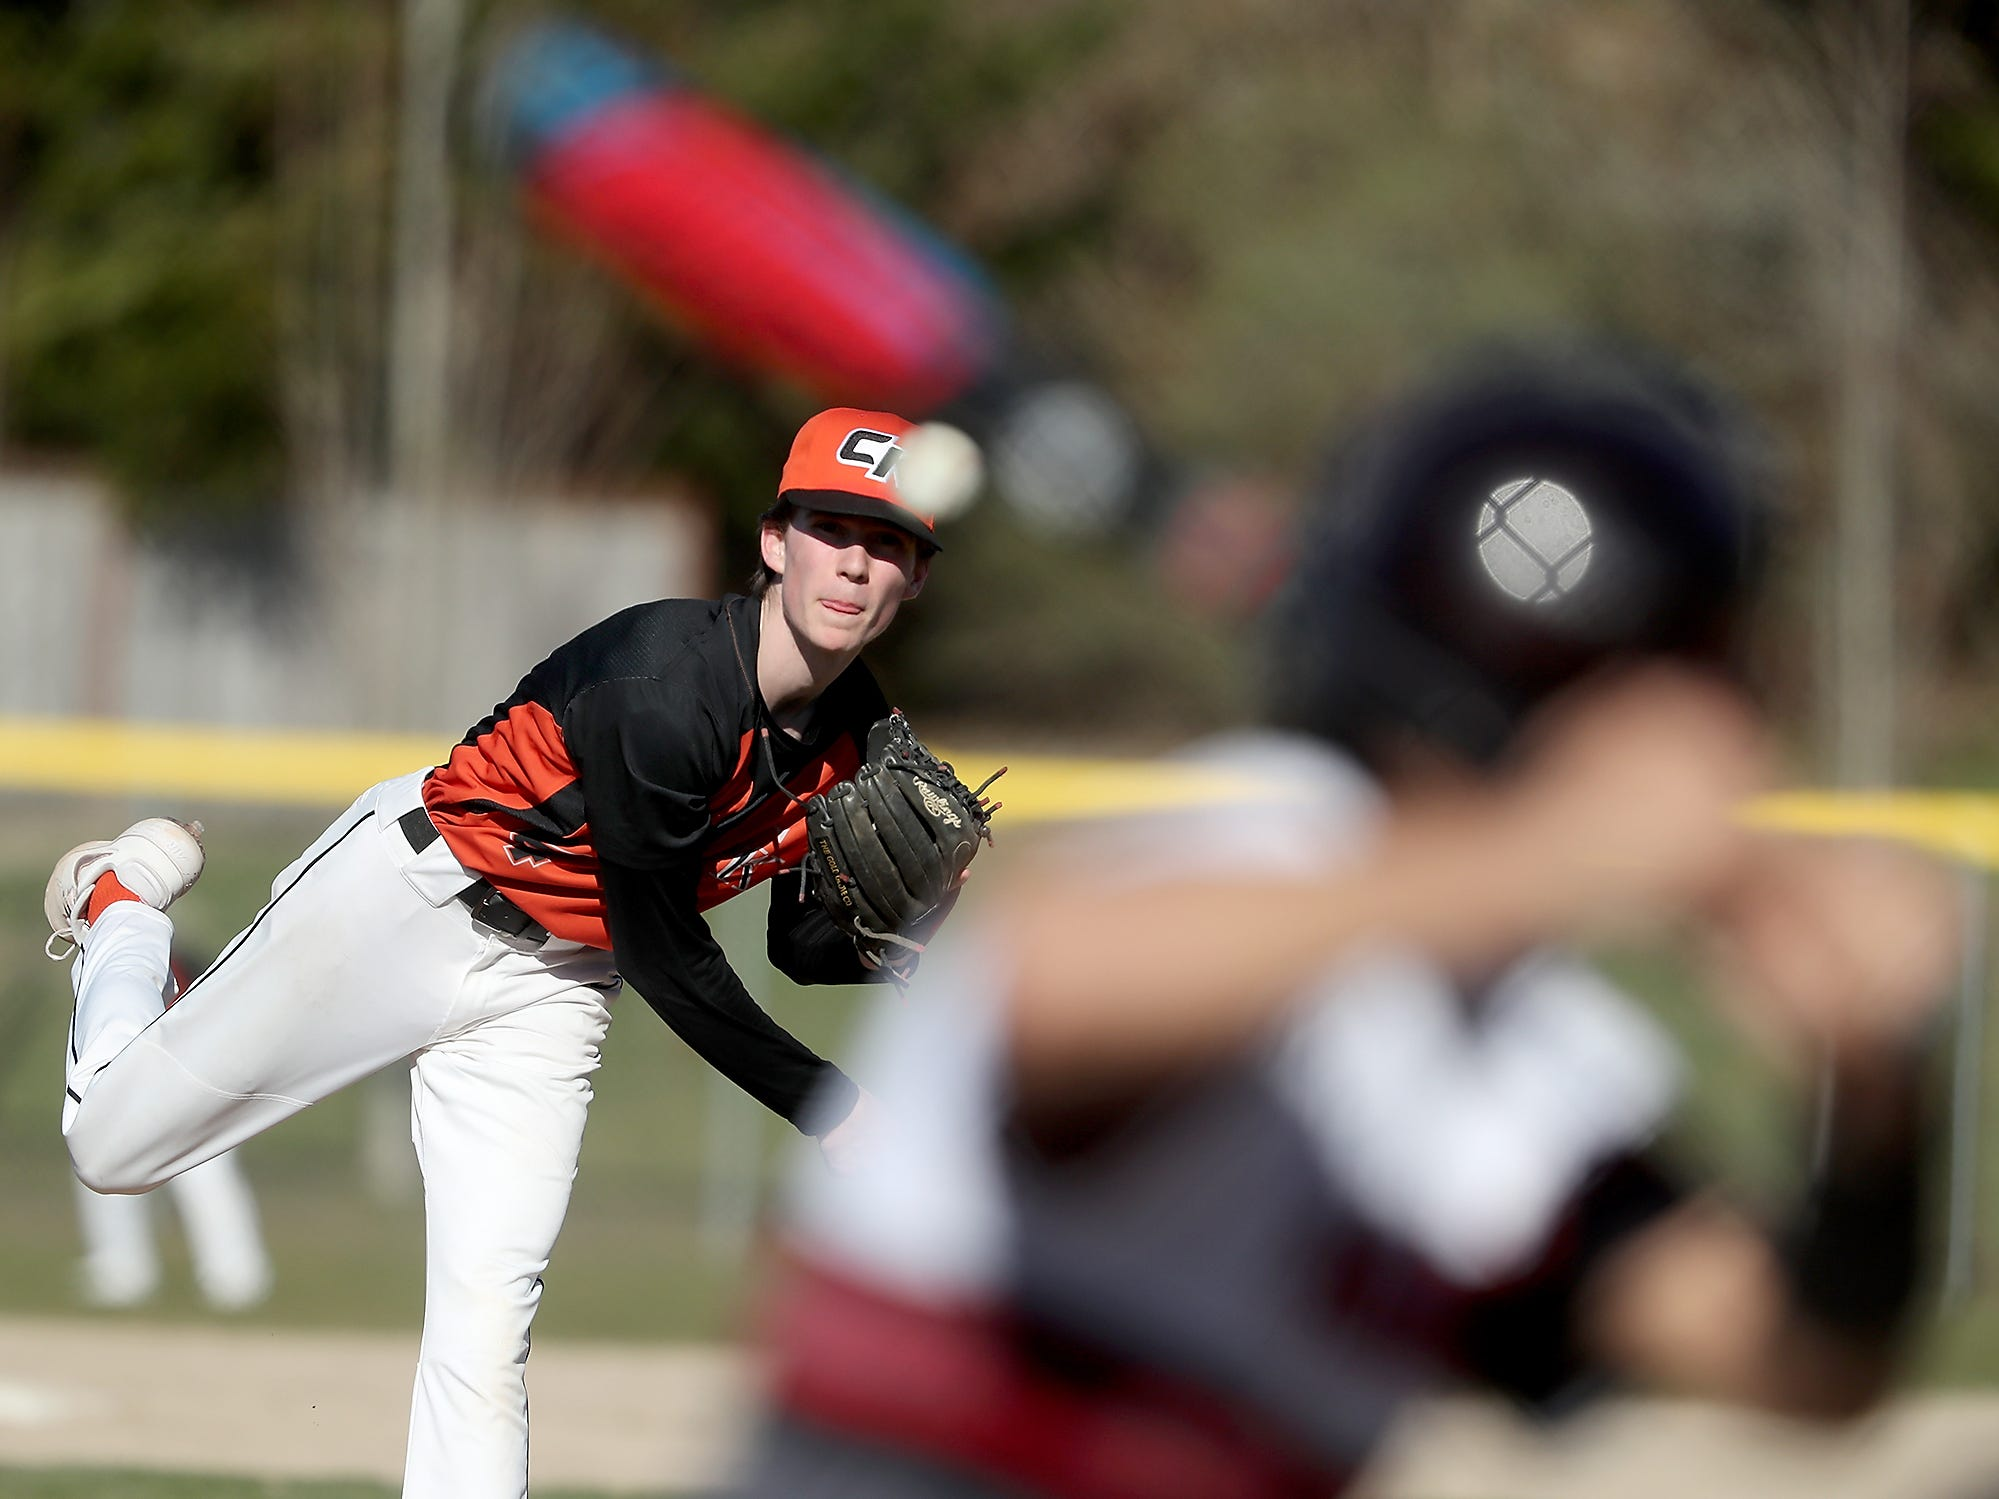 Central Kitsap's Chandler Lindstrom pitches against Yelm on Tuesday, March 19, 2019.